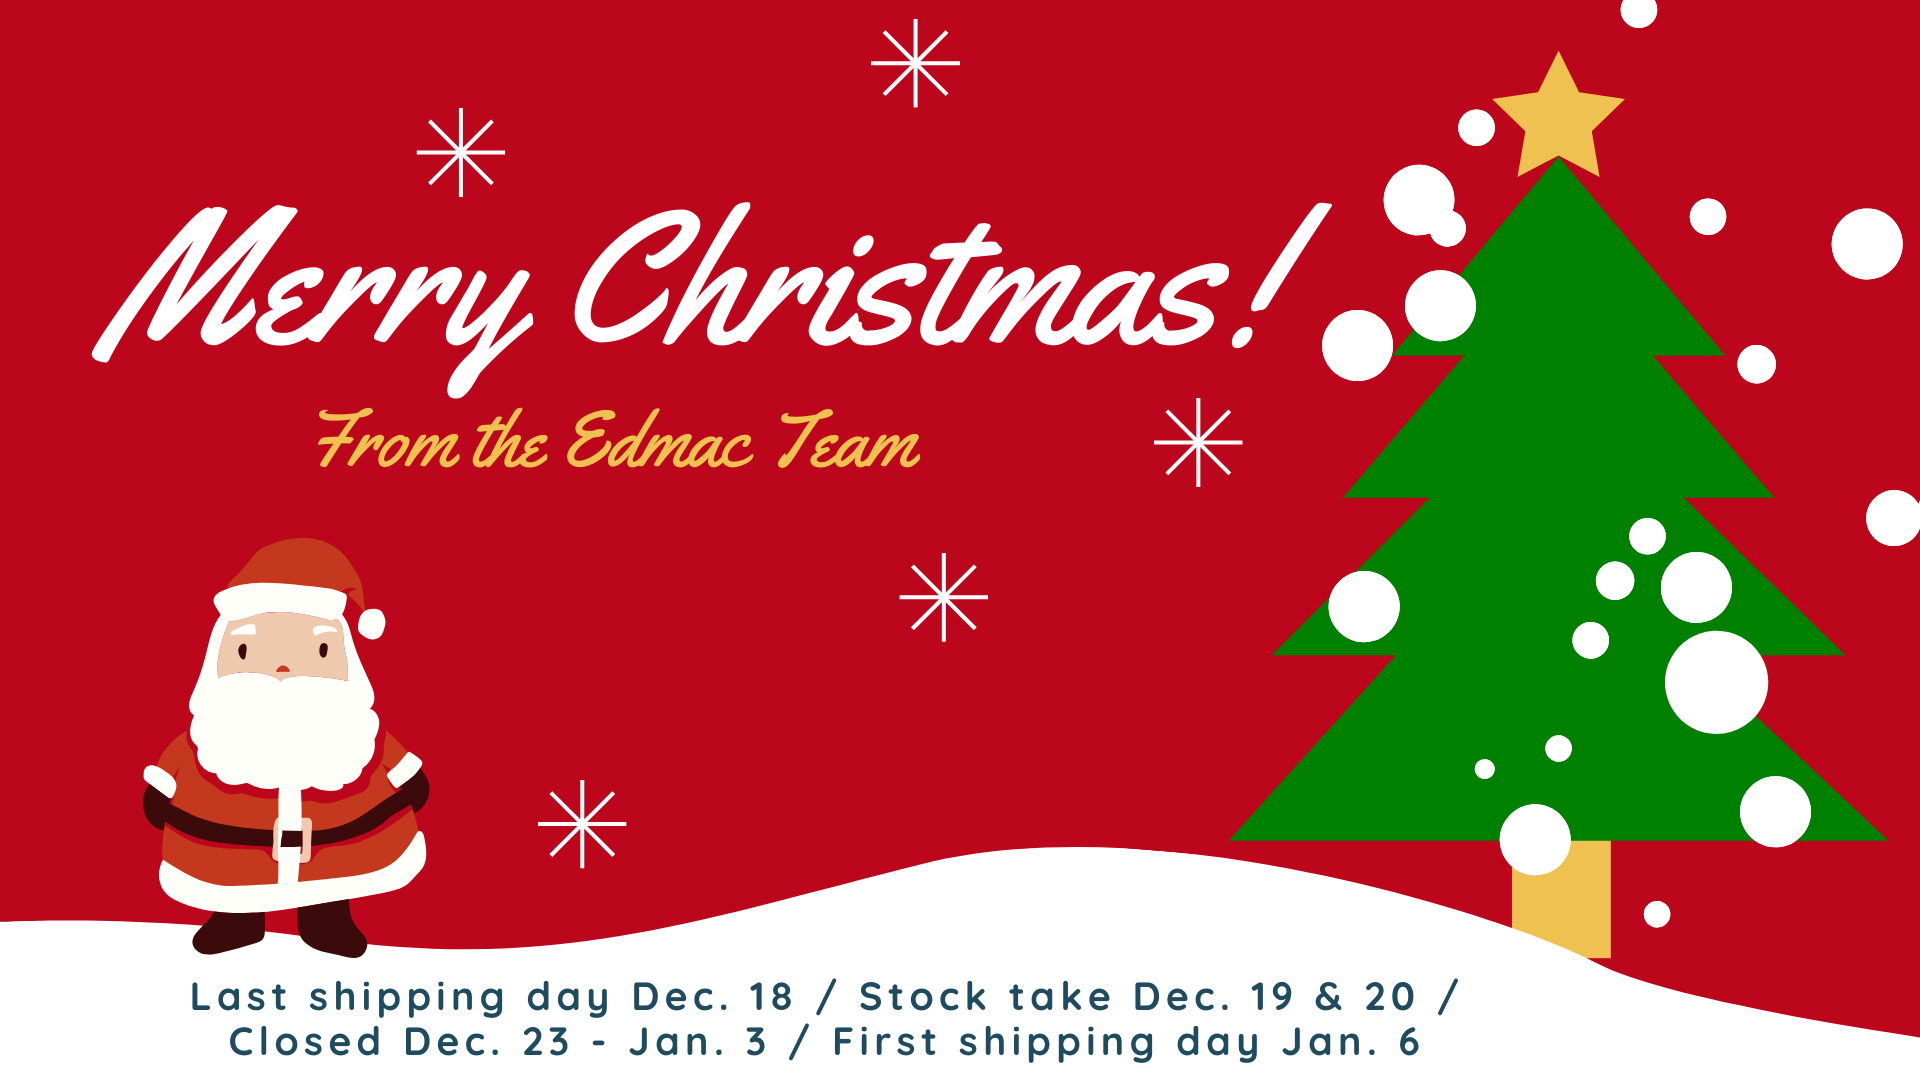 Merry Christmas from the Edmac Team!